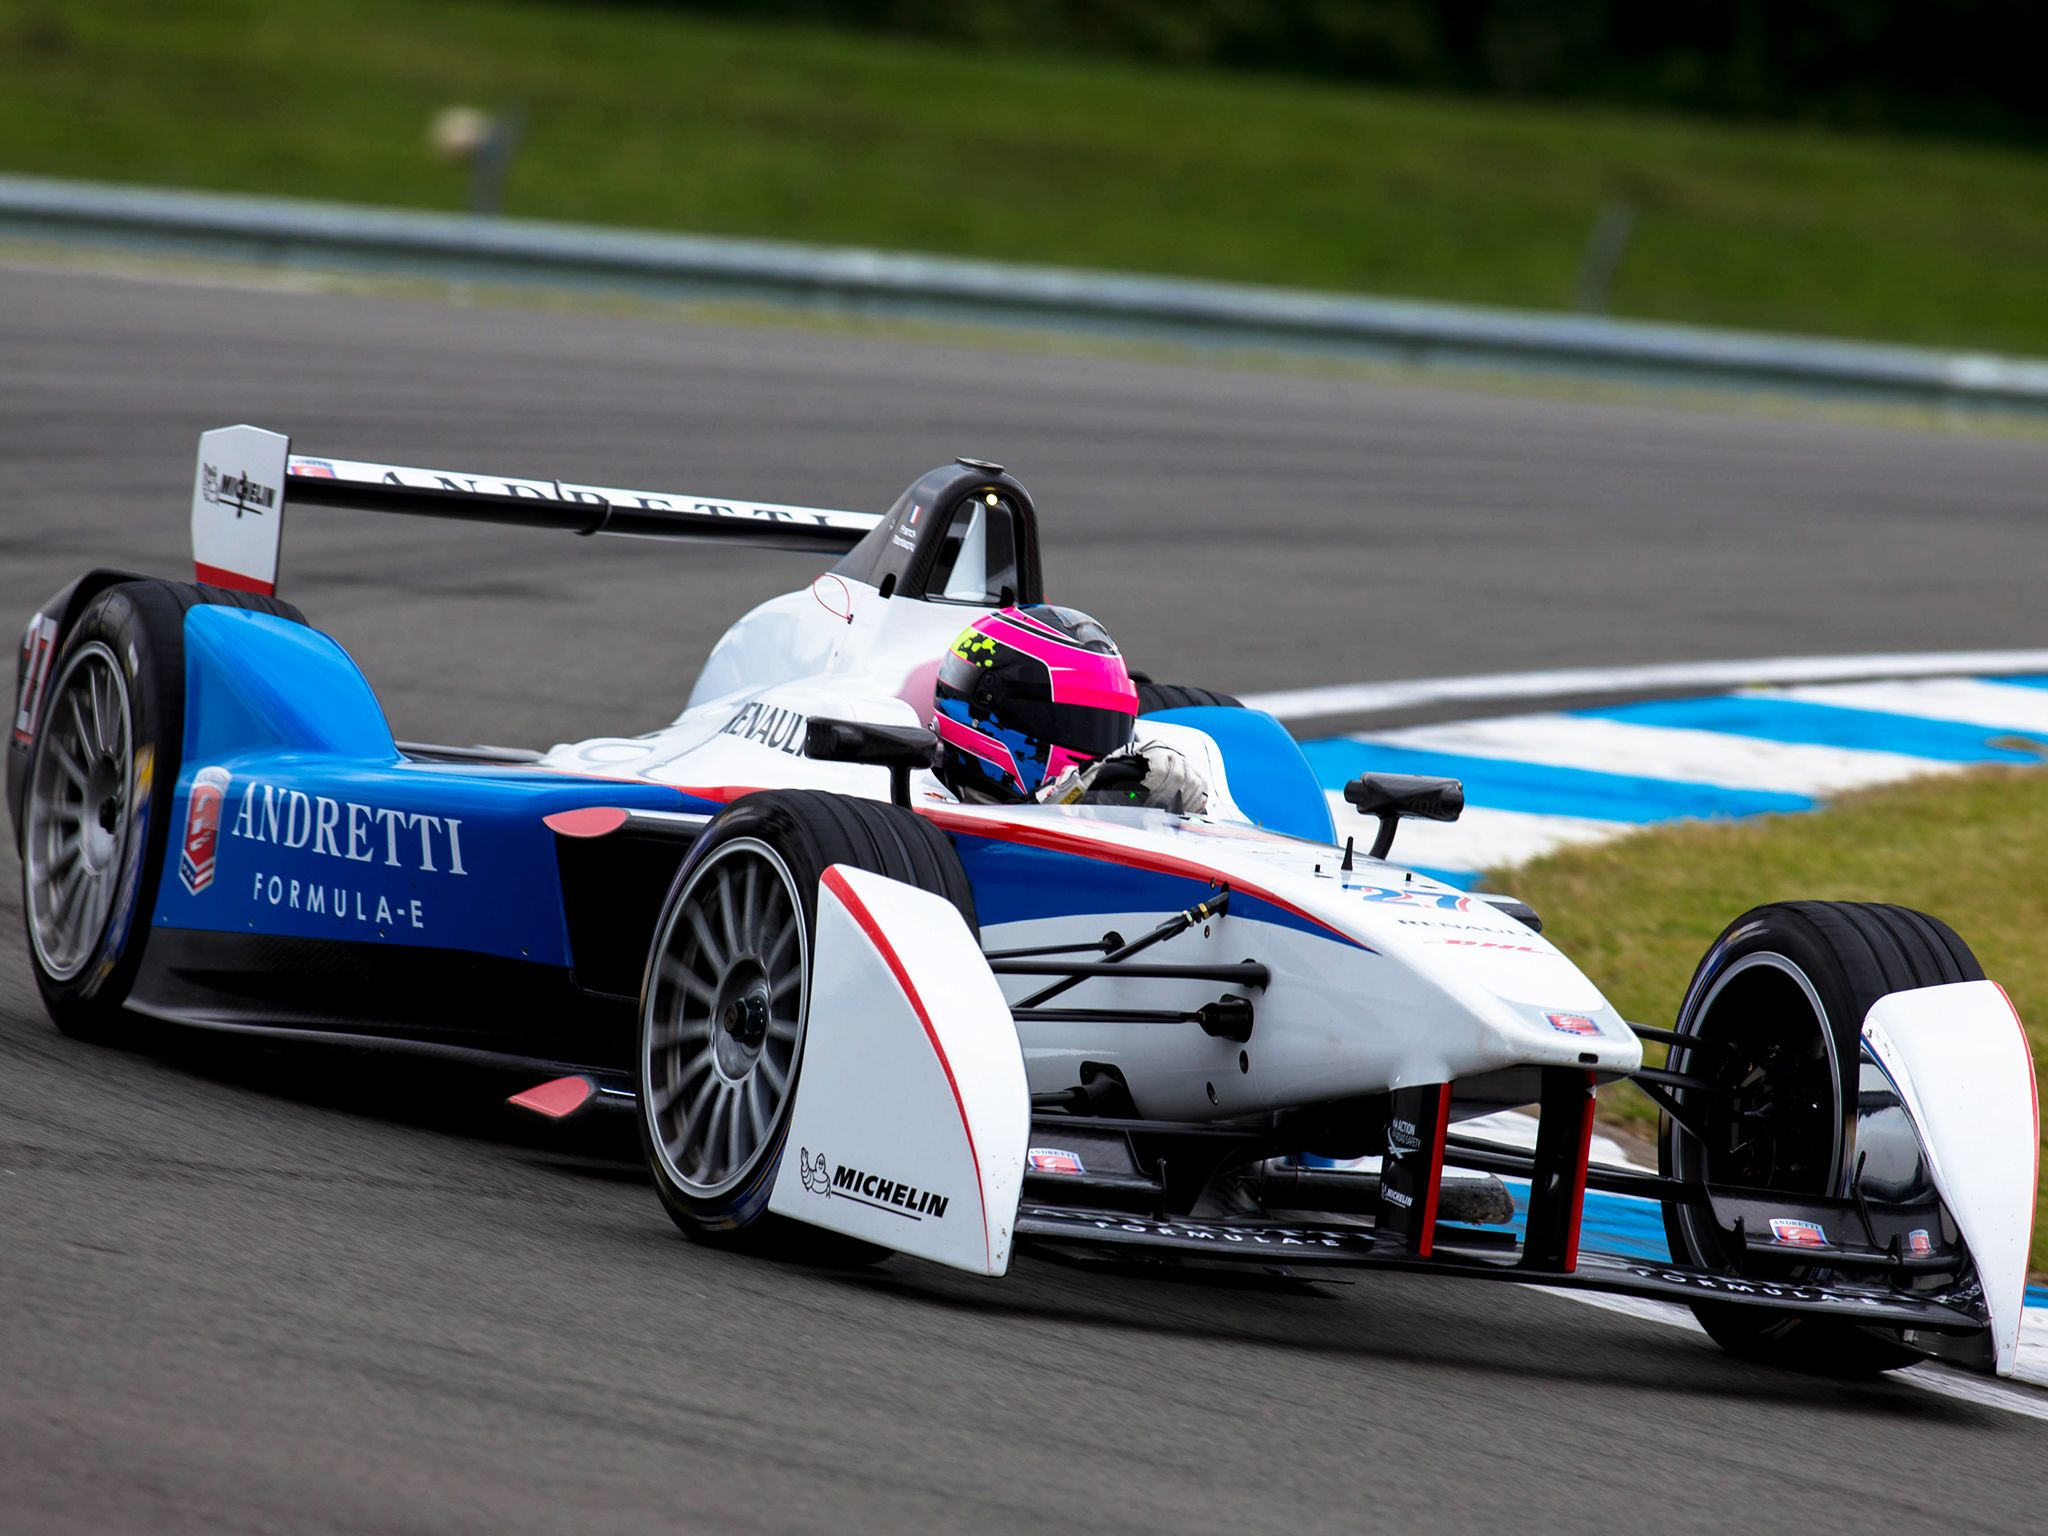 Donington, UK: Andretti car on the track. This image is from Formula E: Racing Recharged. [Photo of the day - September 2014]